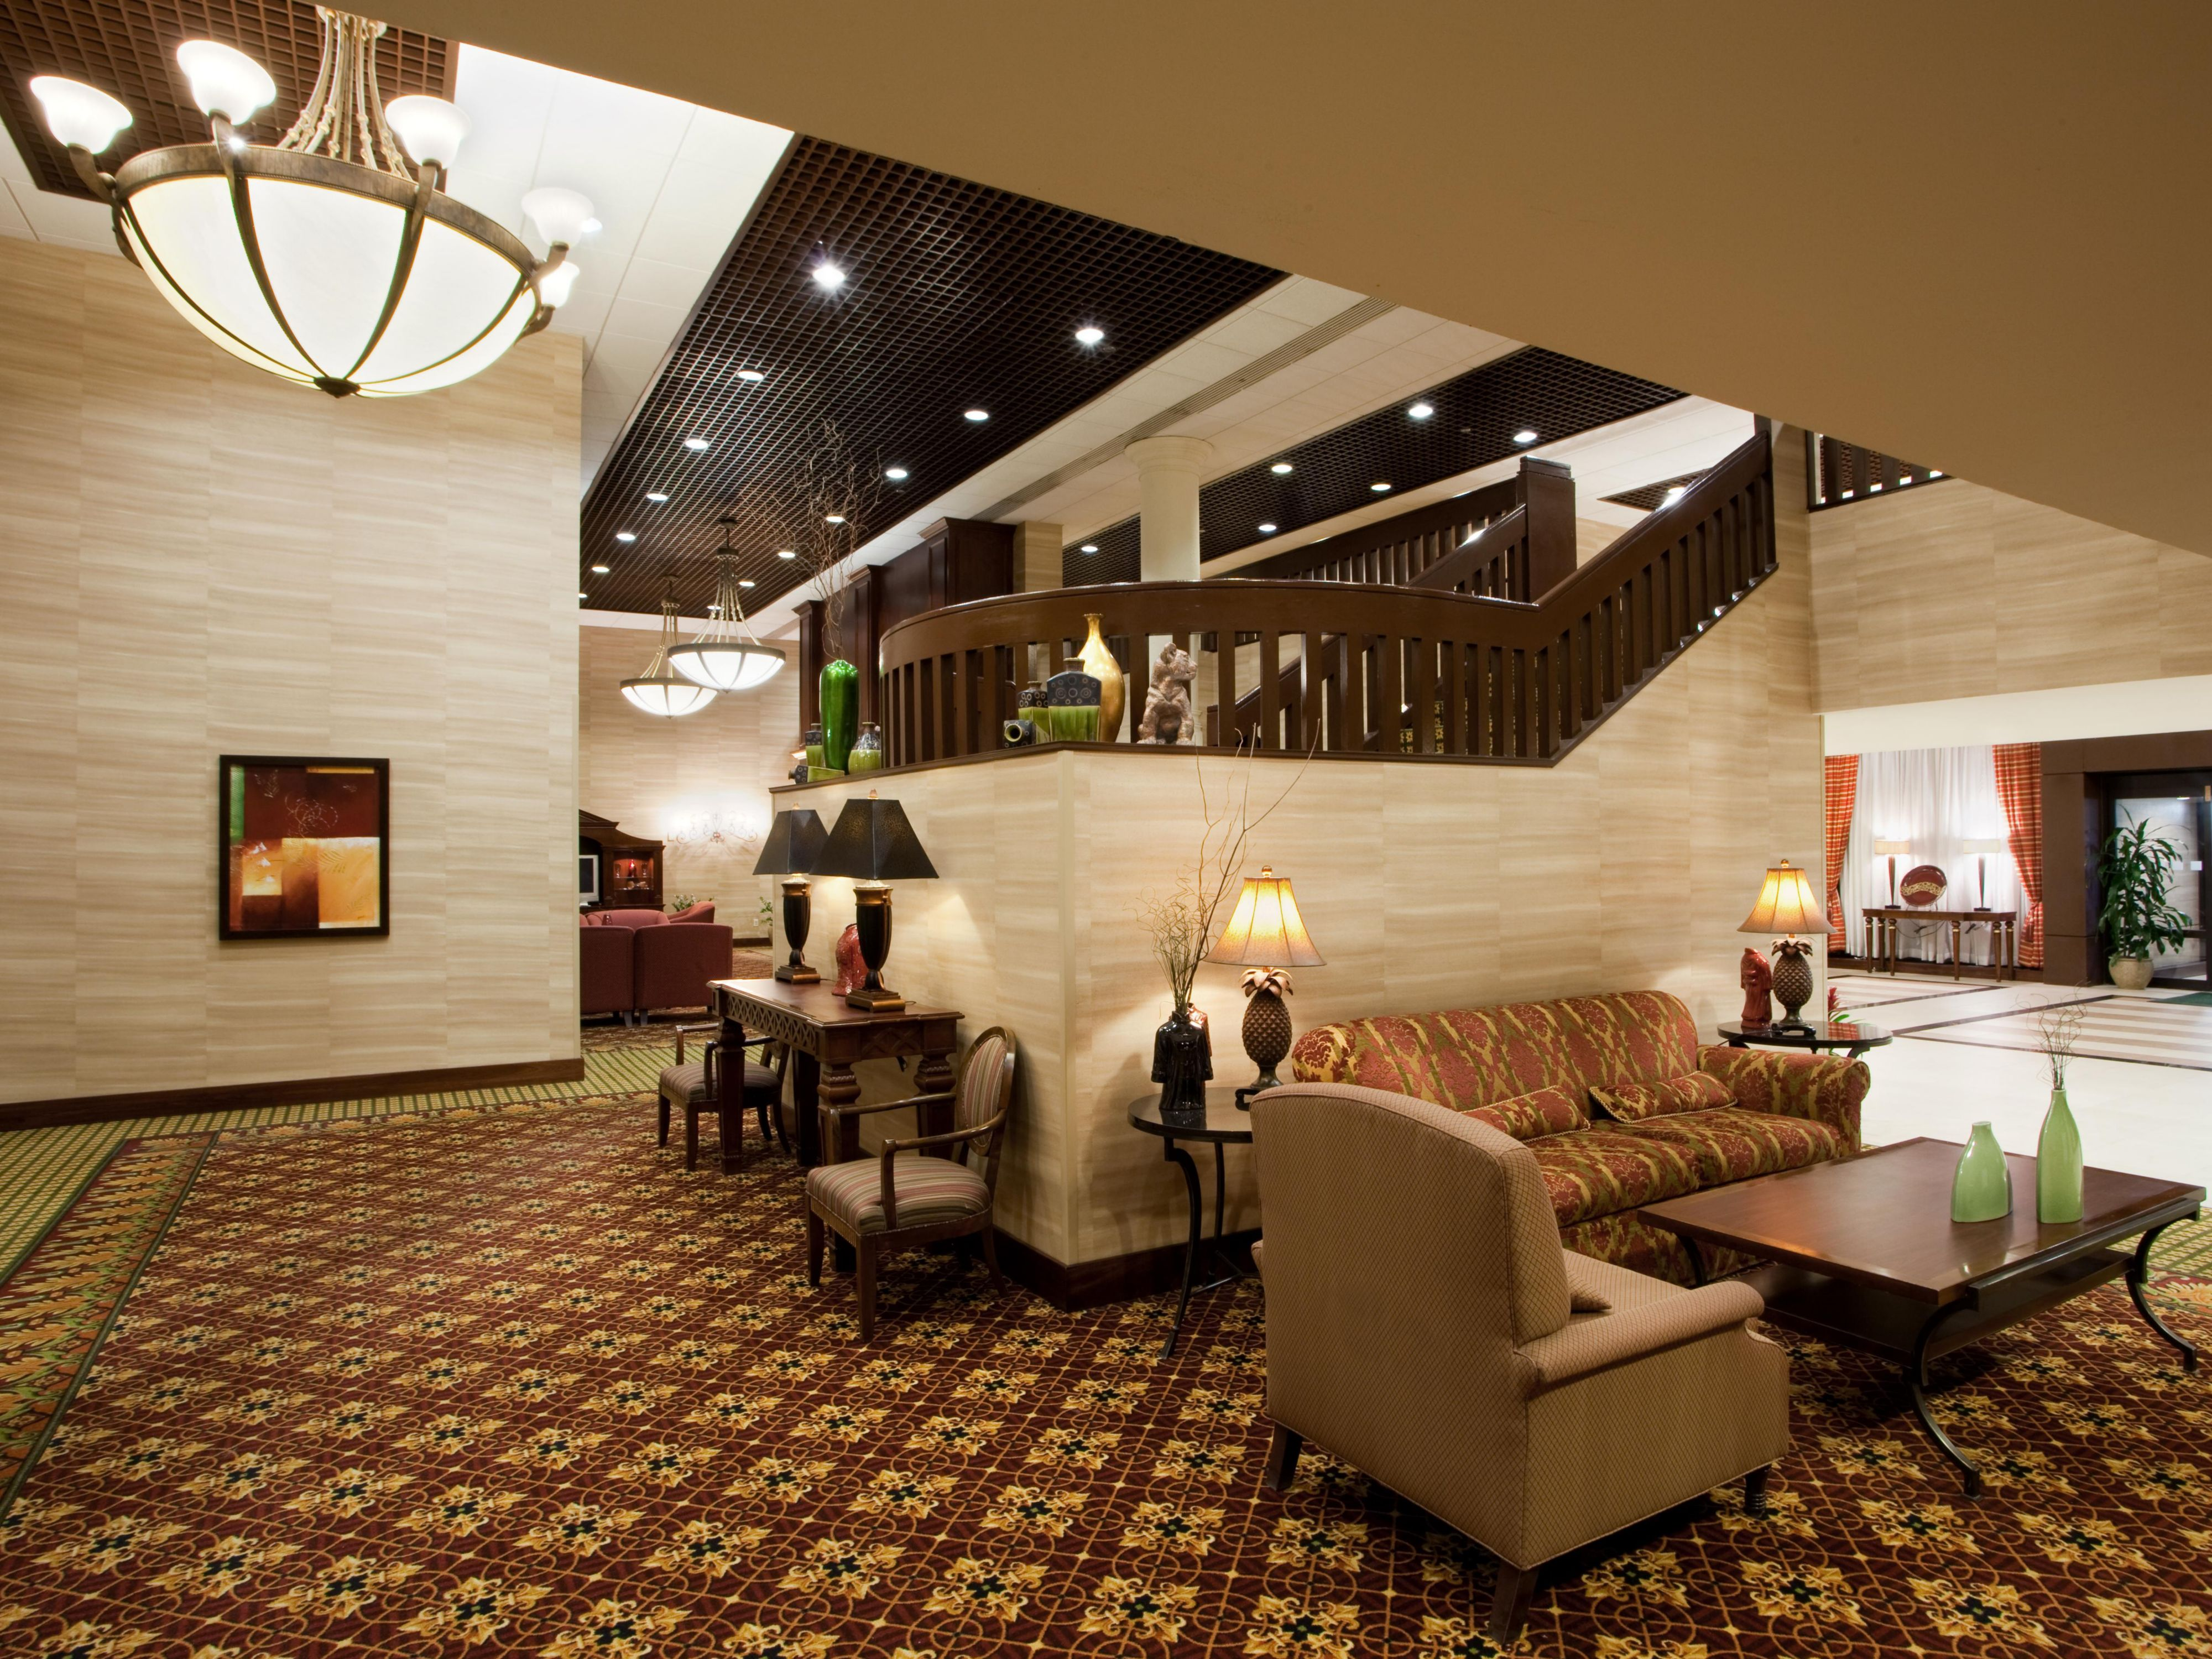 Our spacious hotel lobby offers ample seating for our guests